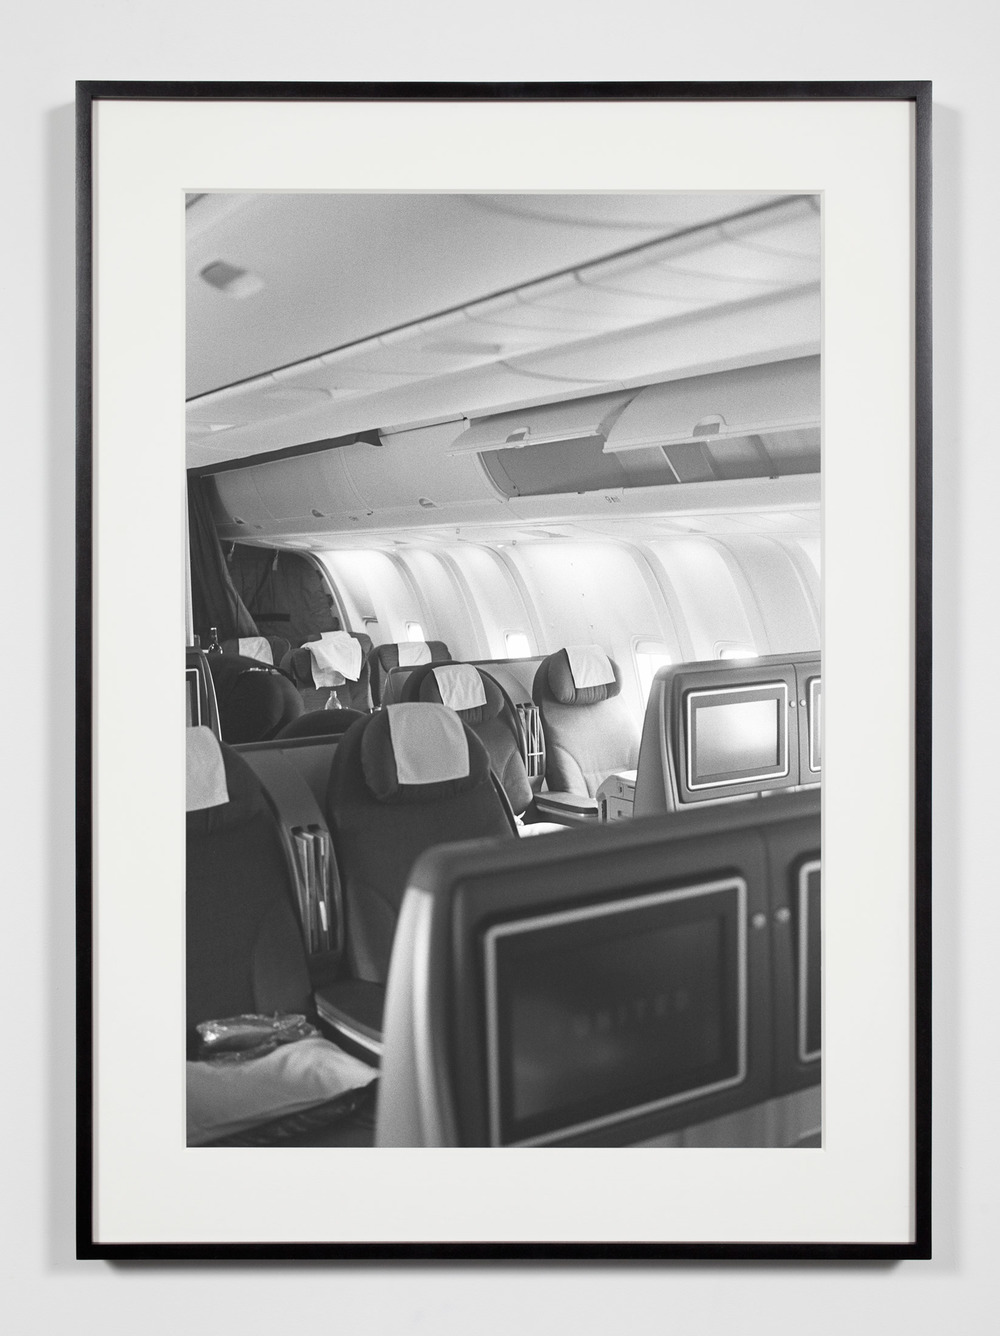 Business Class Cabin, Moscow, Russia, May 17, 2009    2011   Epson Ultrachrome K3 archival ink jet print on Hahnemühle Photo Rag paper  36 3/8 x 26 3/8 inches   Industrial Portraits, 2008–